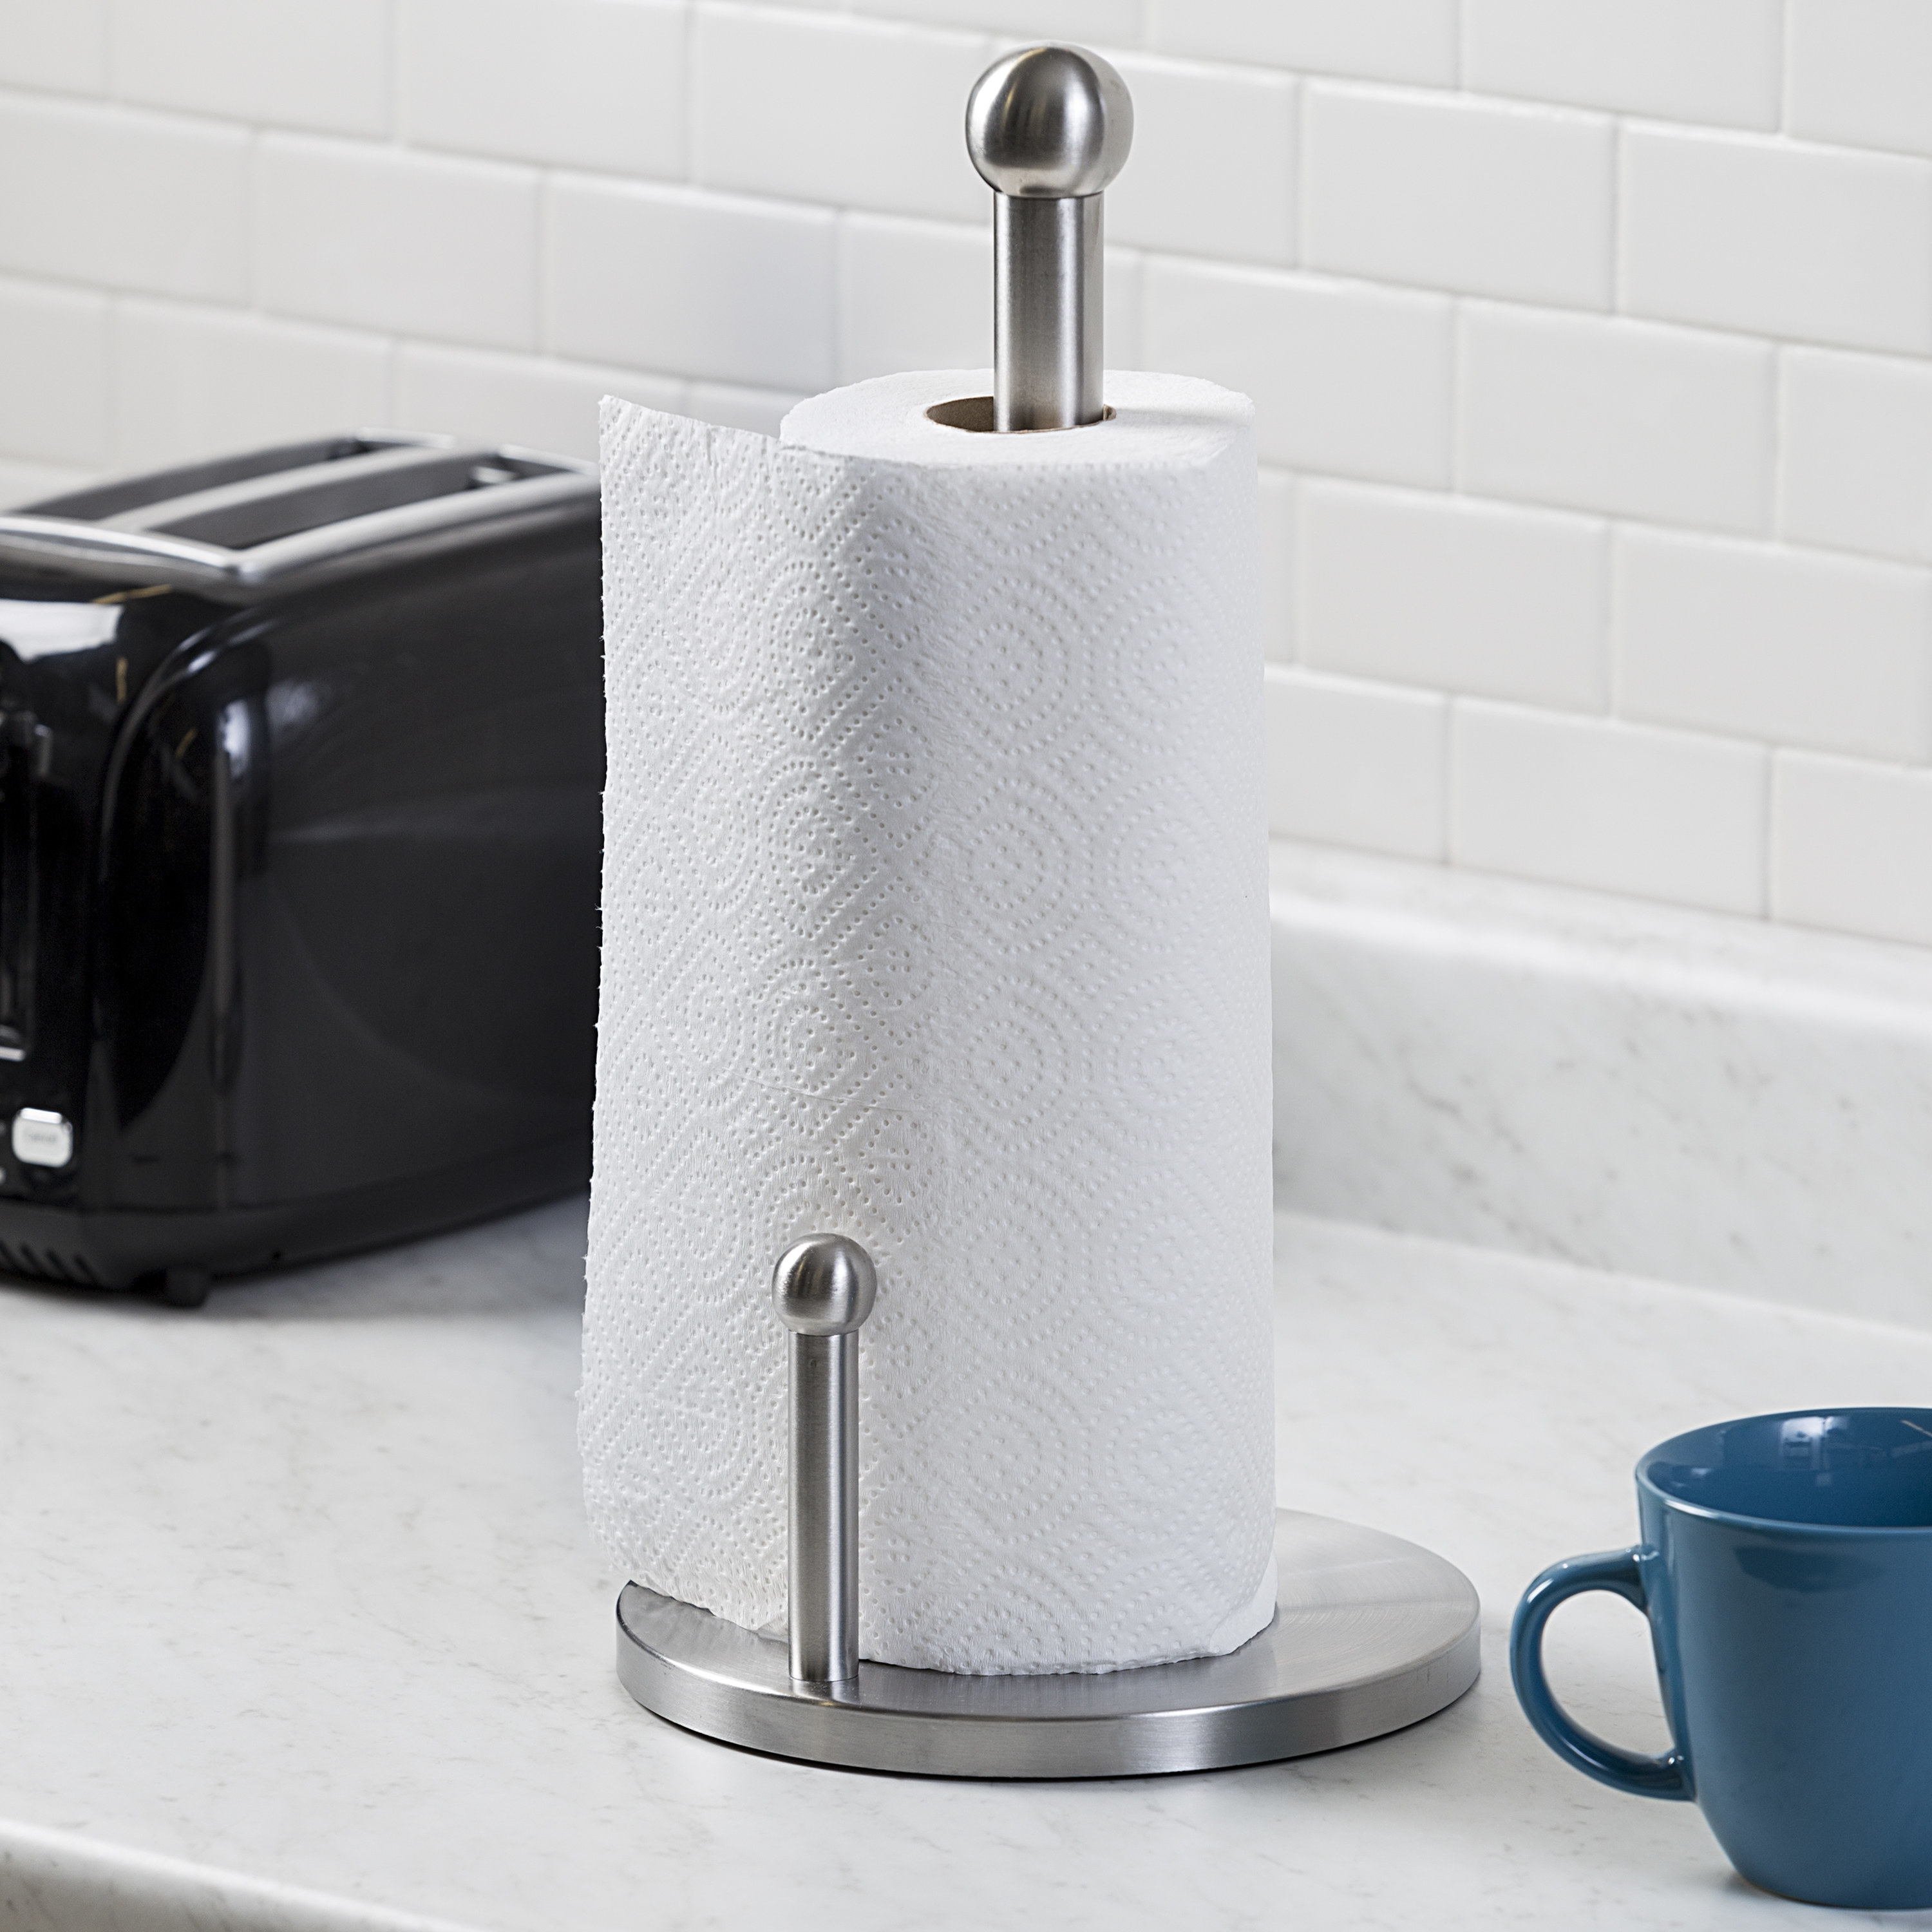 stainless steel paper towel holder with a roll of paper towels, sitting on a counter